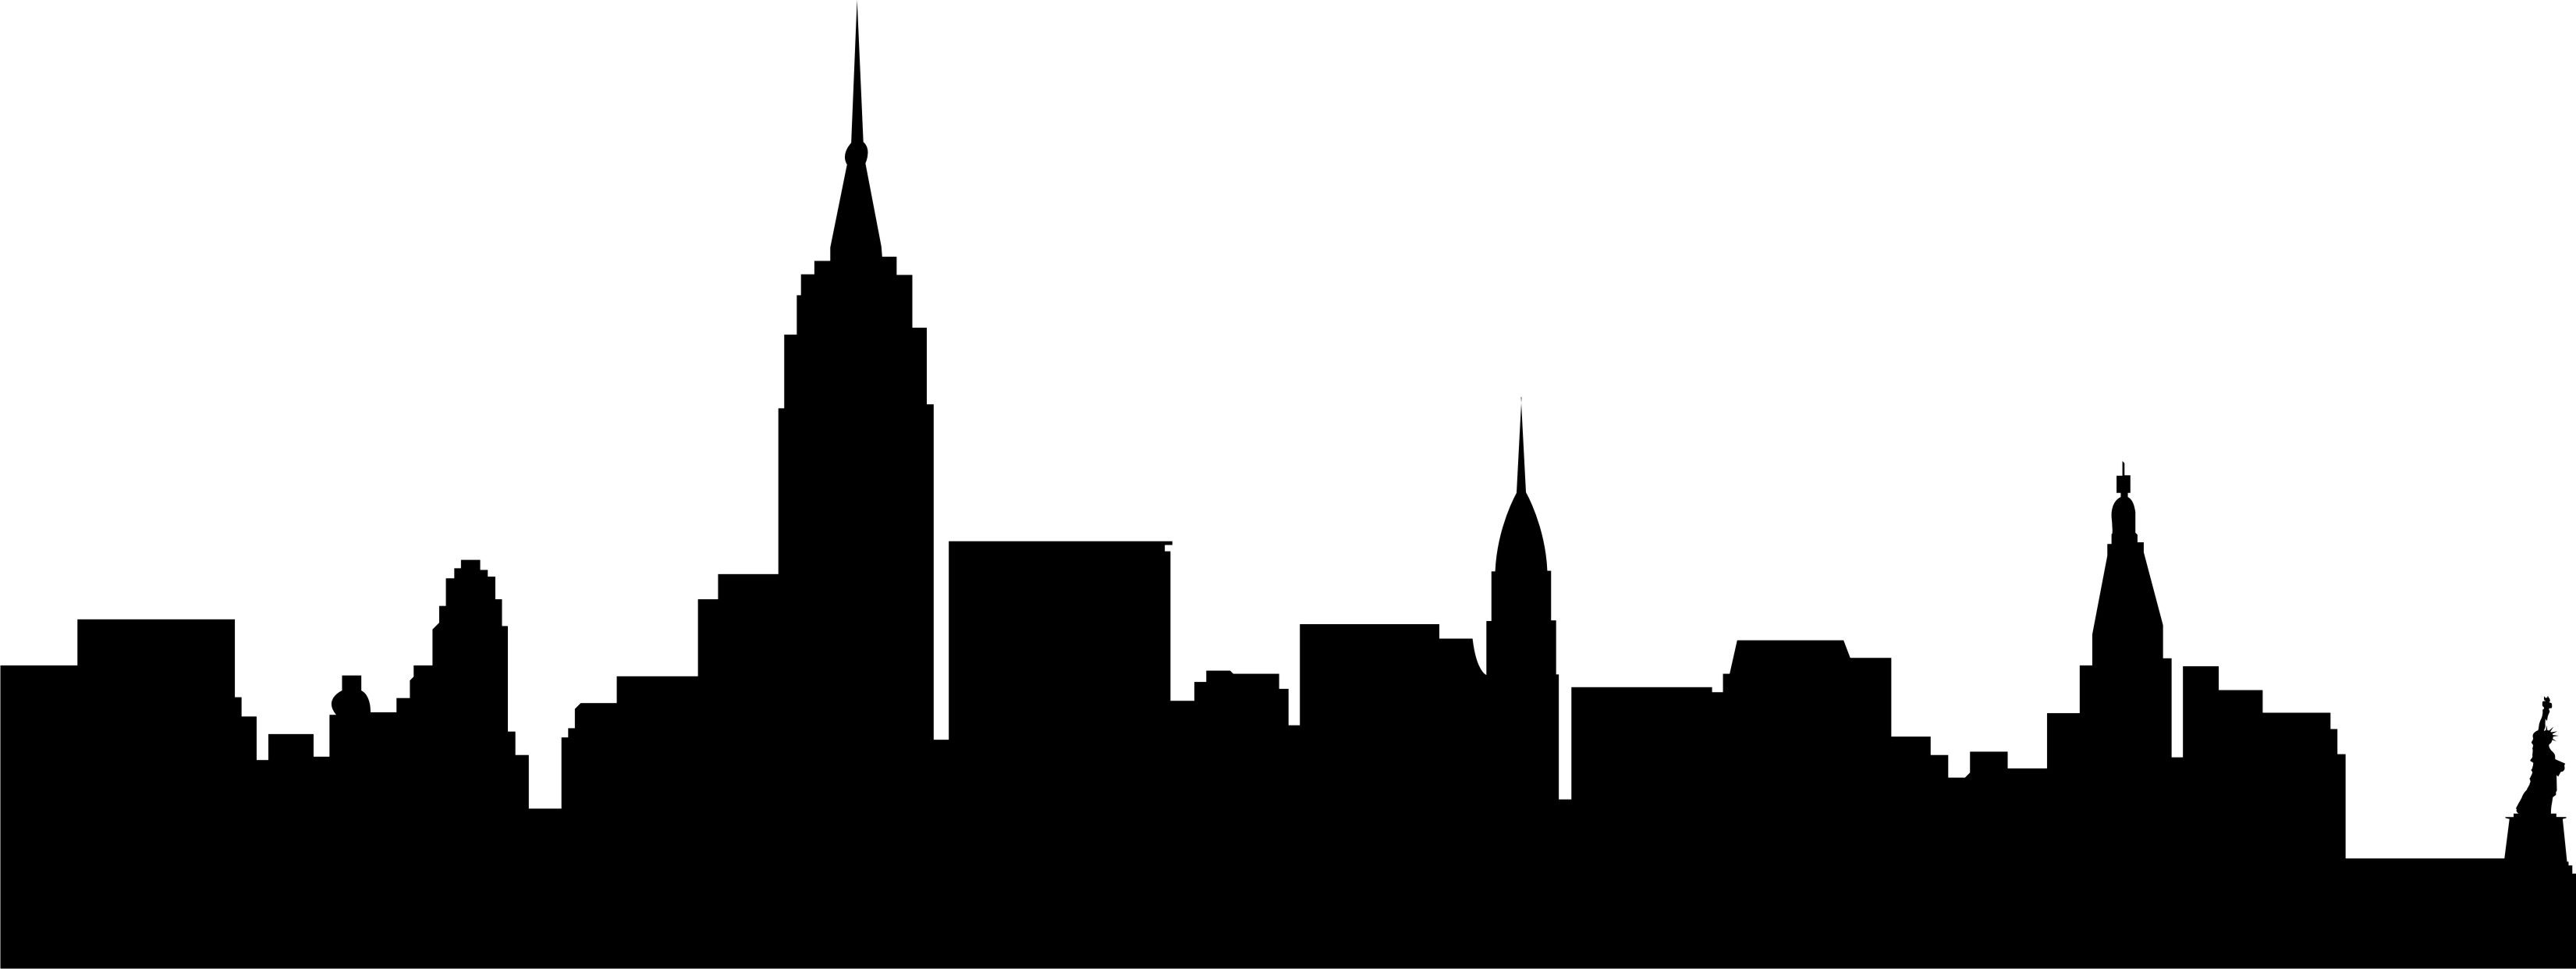 ny city skyline silhouette at getdrawings com free for personal rh getdrawings com nyc skyline clipart free new york city skyline clipart